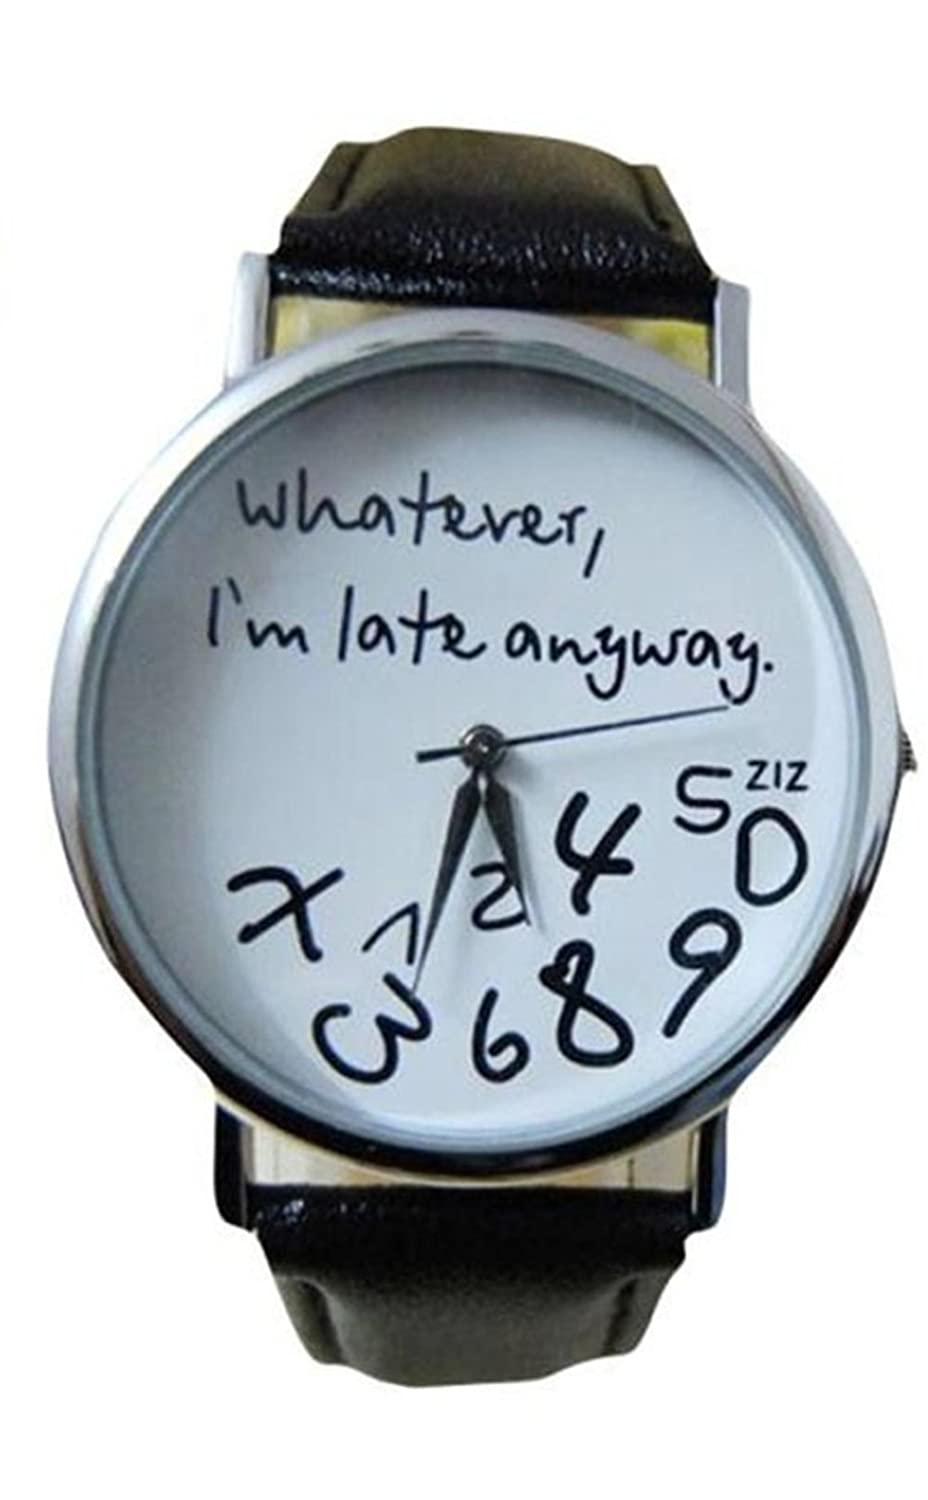 Amazon.com: Womens Watch,Funny Leather Wristwatch Whatever I am Late Anyway Letter Dress Clock Axchongery (Black): Musical Instruments